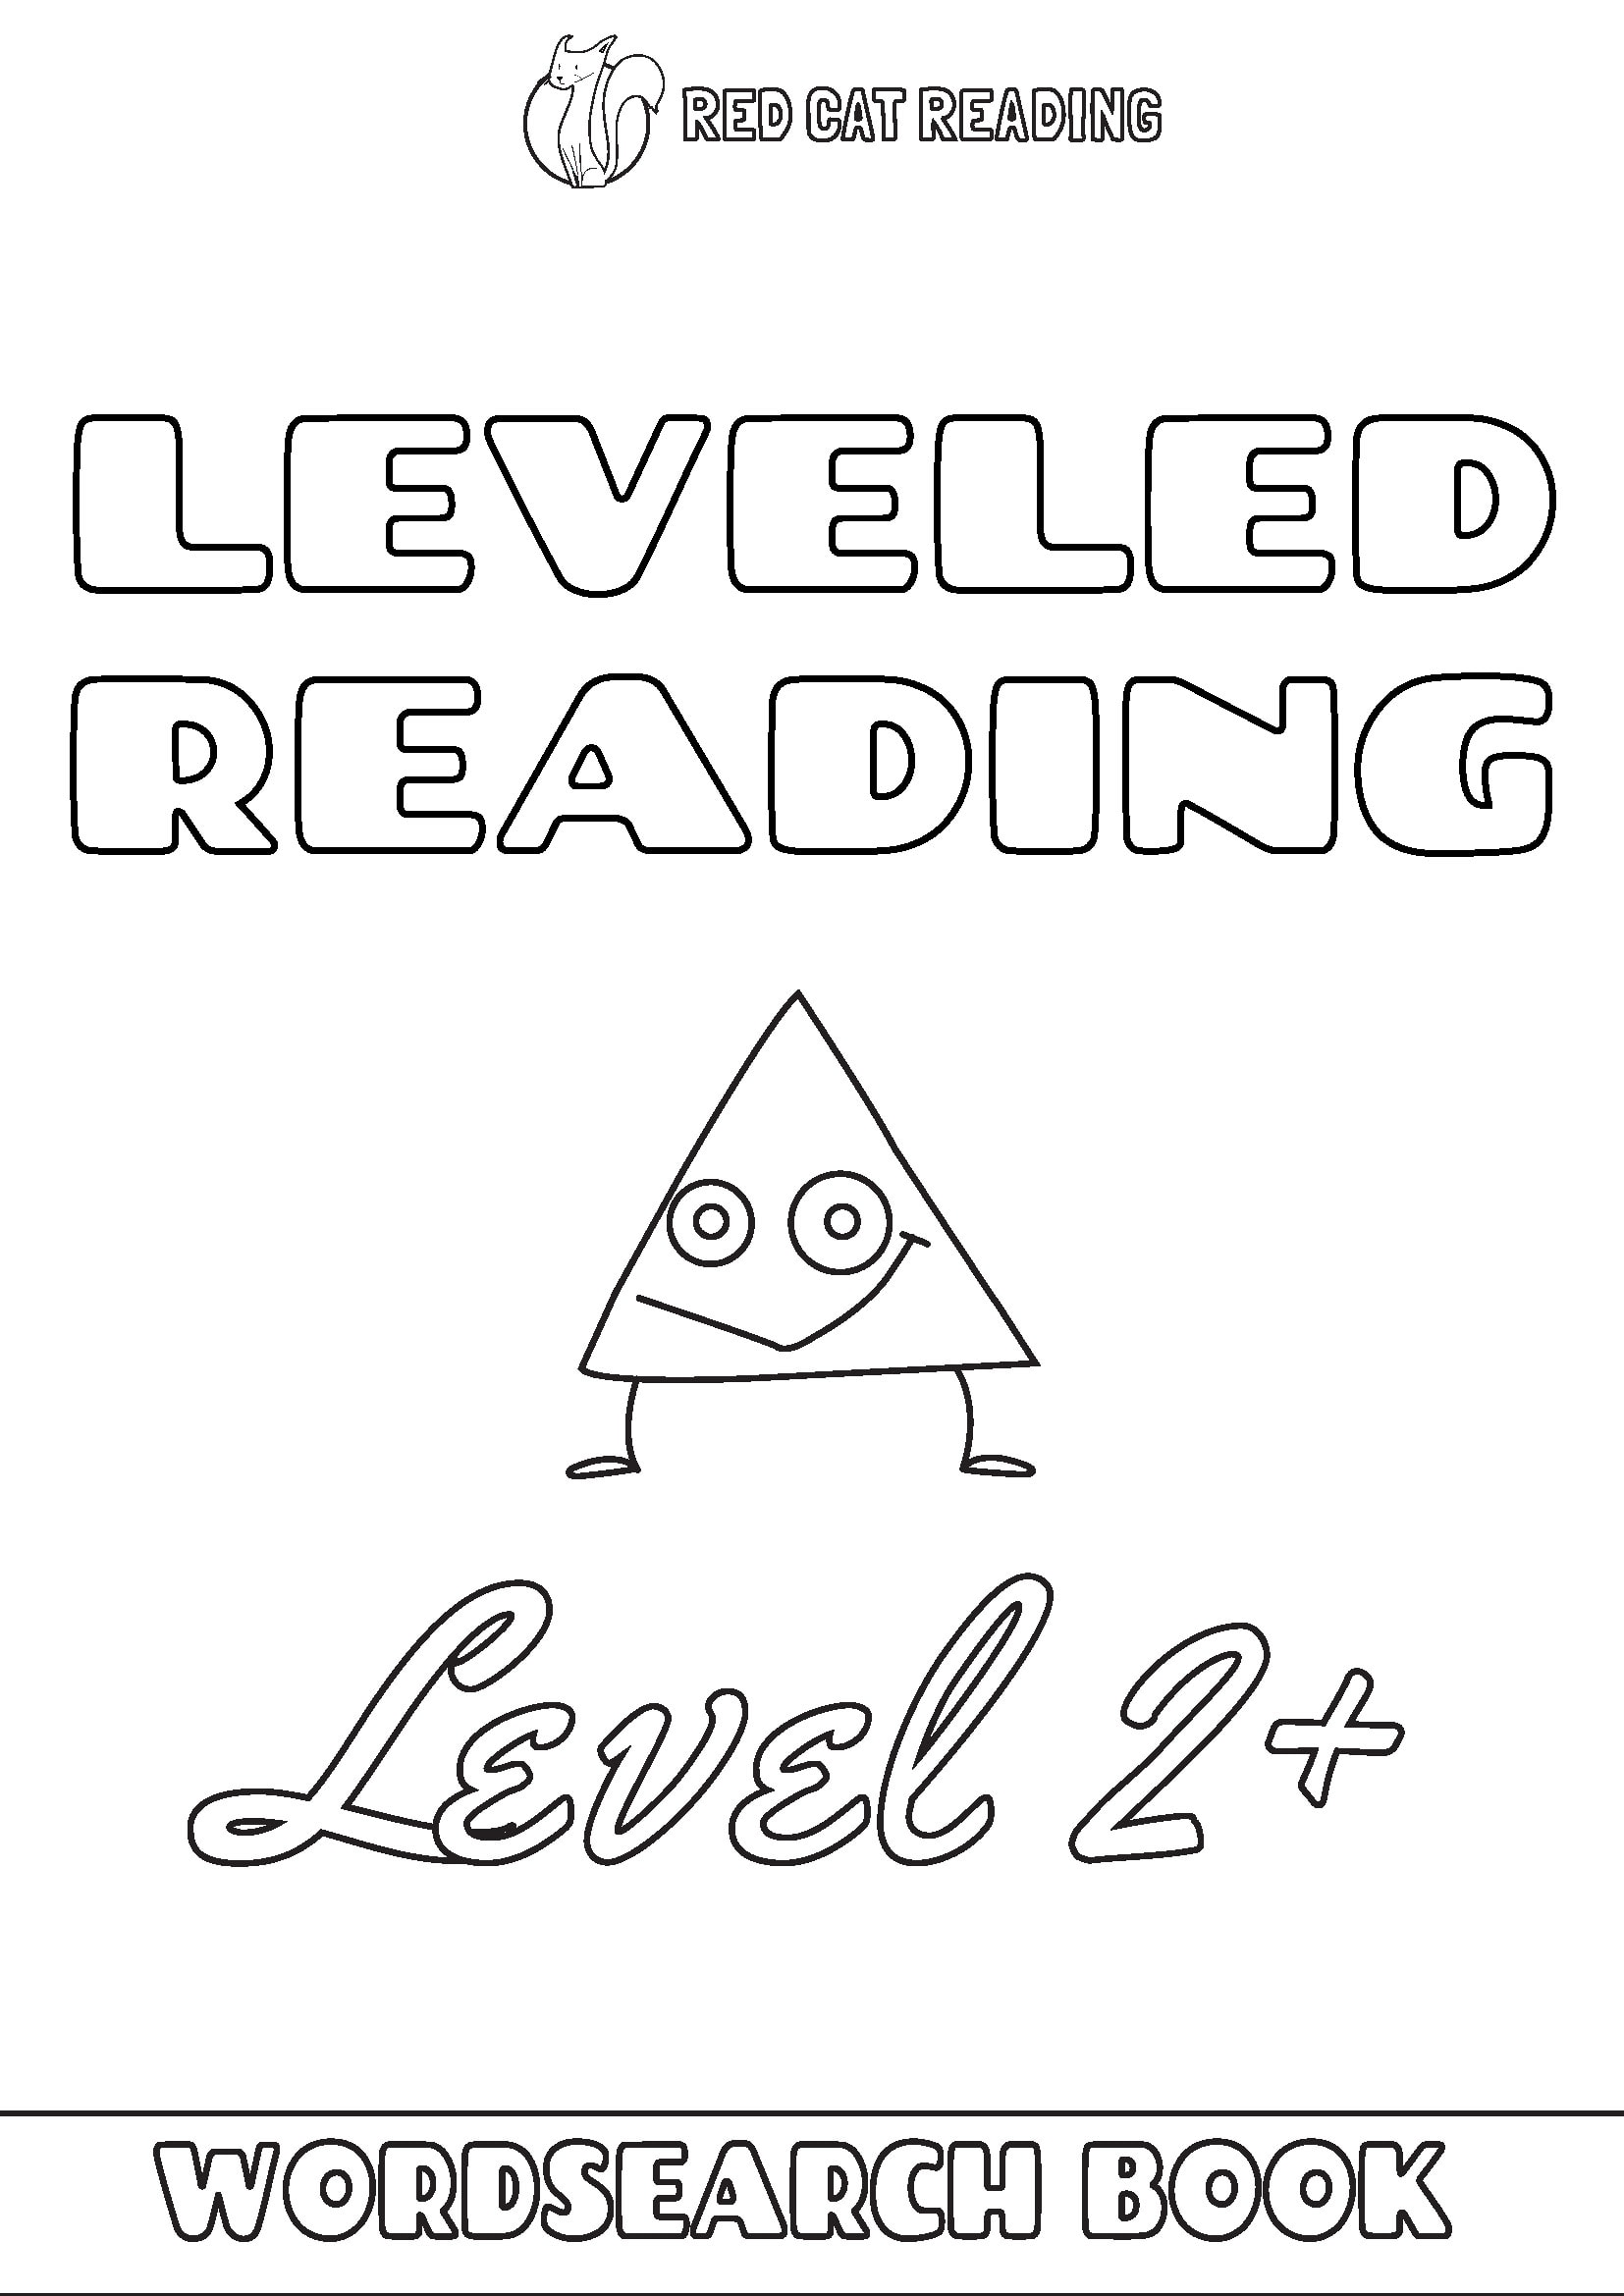 Red Cat Reading Leveled Reading Level 2+ Worksheet